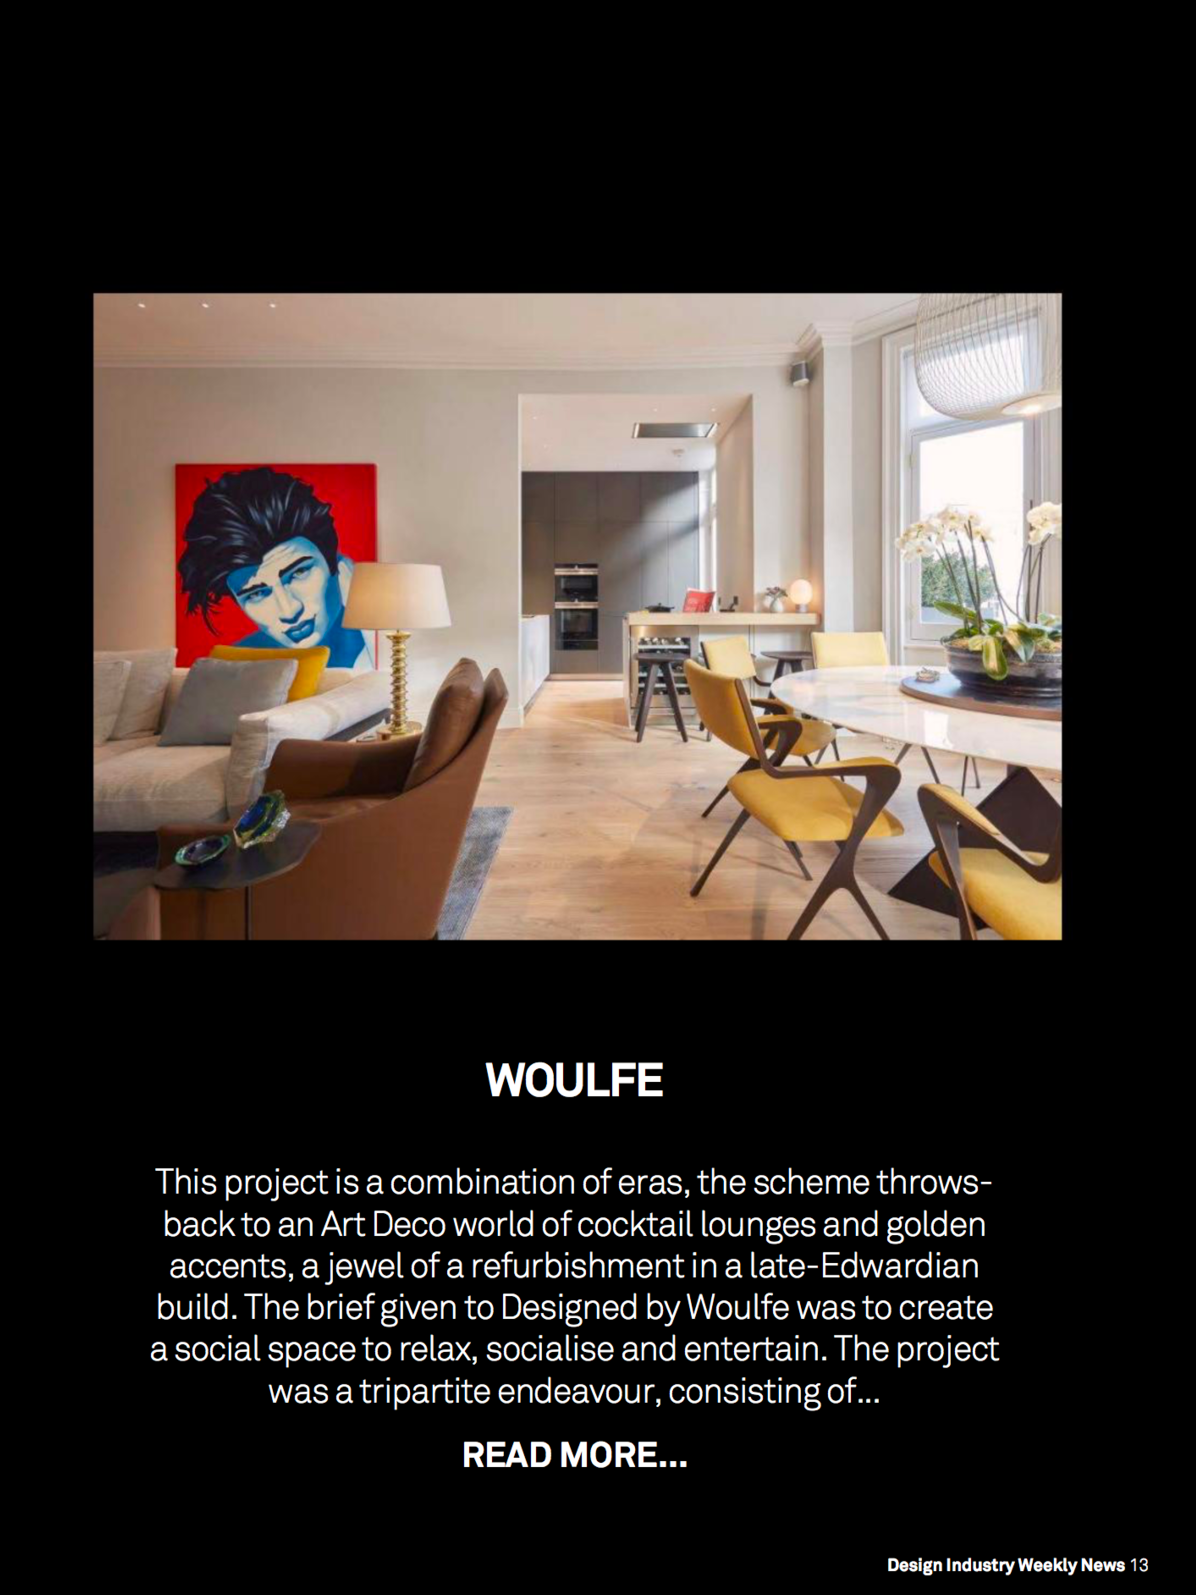 Designed by Woulfe featured in Design Industry Weekly News